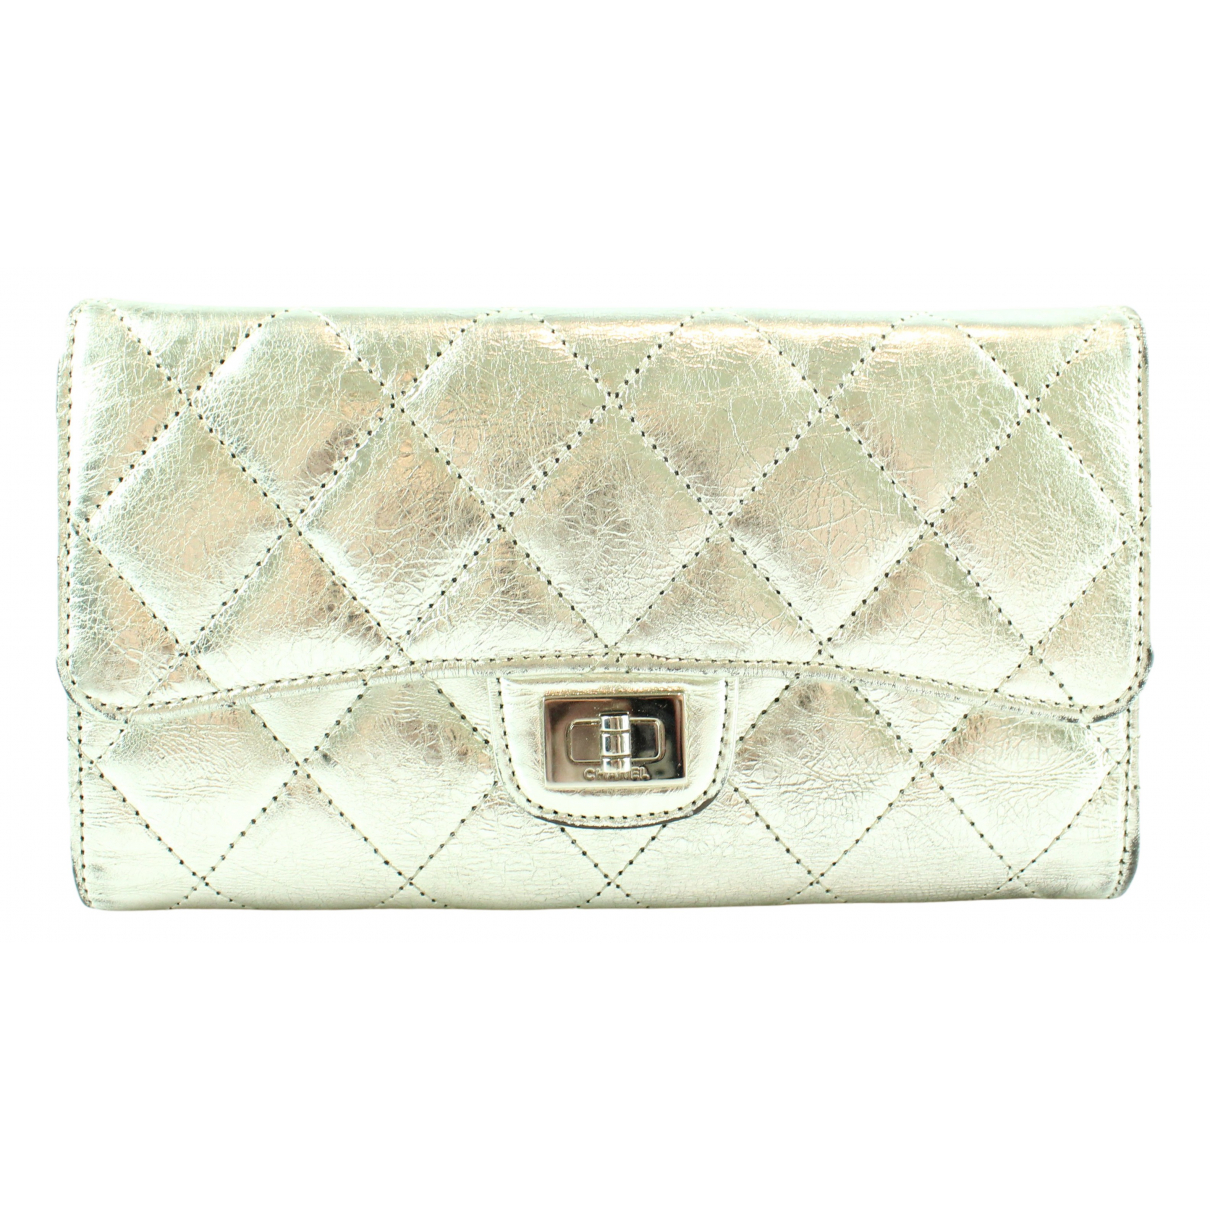 Chanel 2.55 Silver Leather wallet for Women N